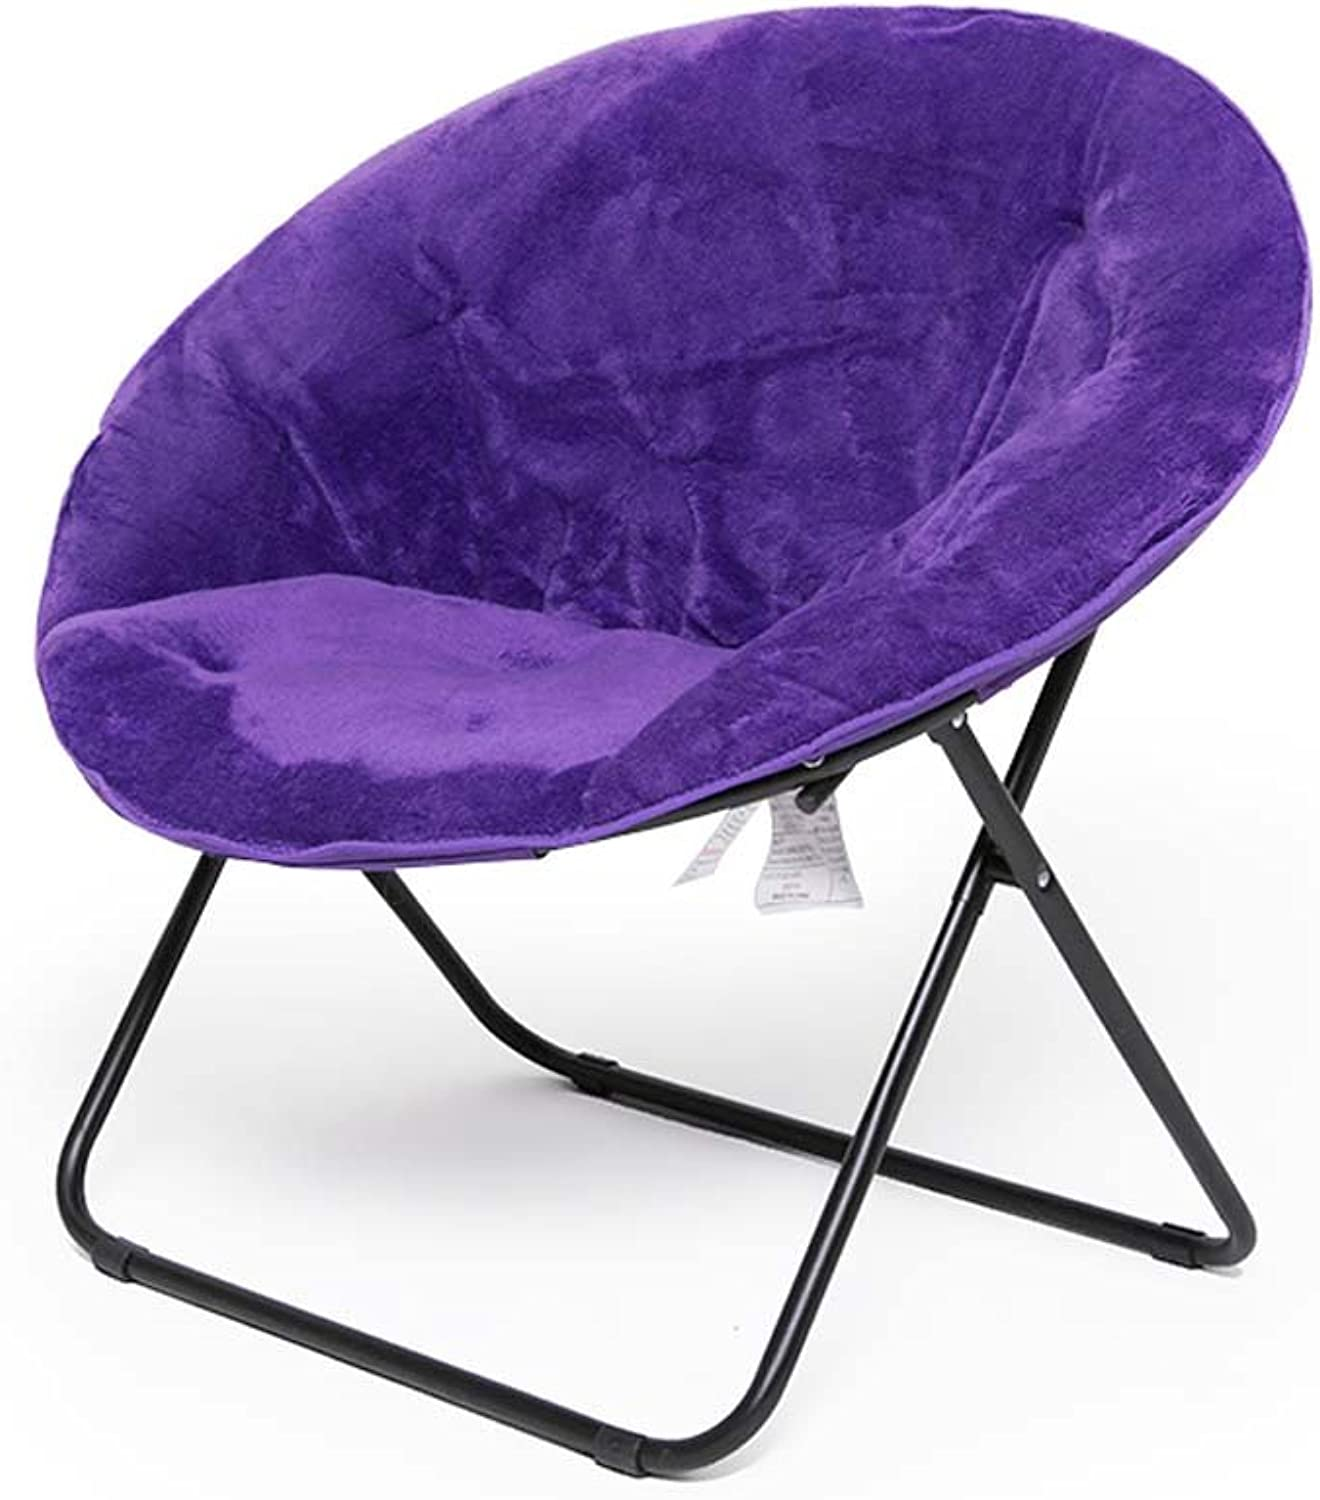 Moon Chairs Stühle Für Erwachsene Liegestühle Liegestühle Liegestühle Lazy Chair Radar Chair Lounge Chair Klappstühle Runde Stühle Sofa Chair Oxford Gewebe Thick Upright Cotton Steel,lila B07C2M61V2 | Outlet Store Online  a87186